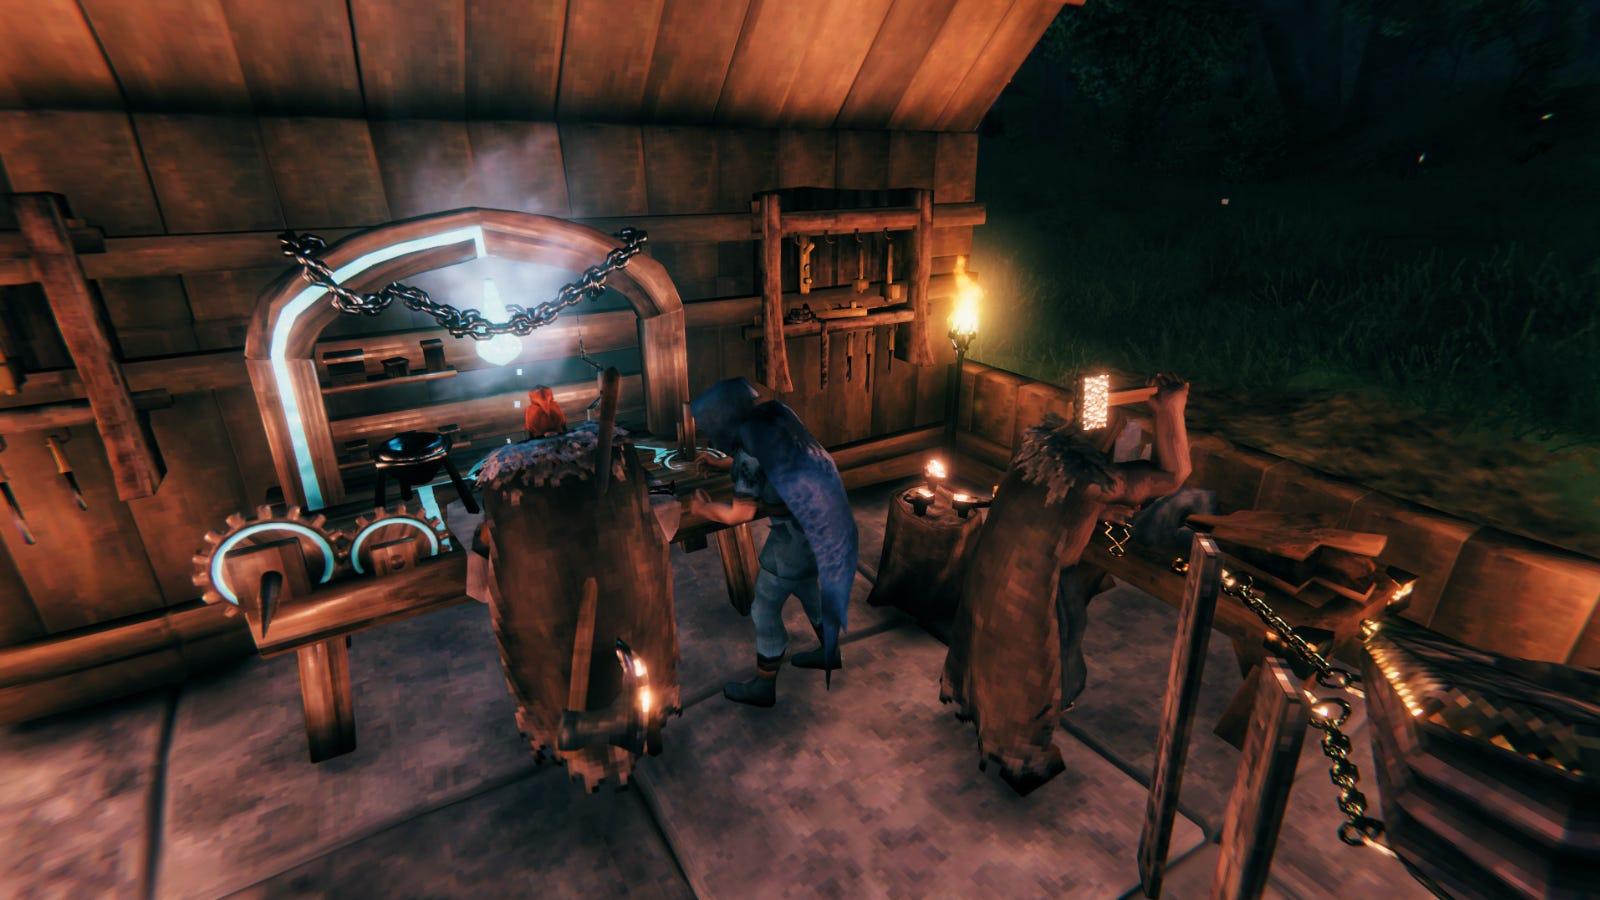 Three player characters in 'Valheim' crafting items at various crafting stations.